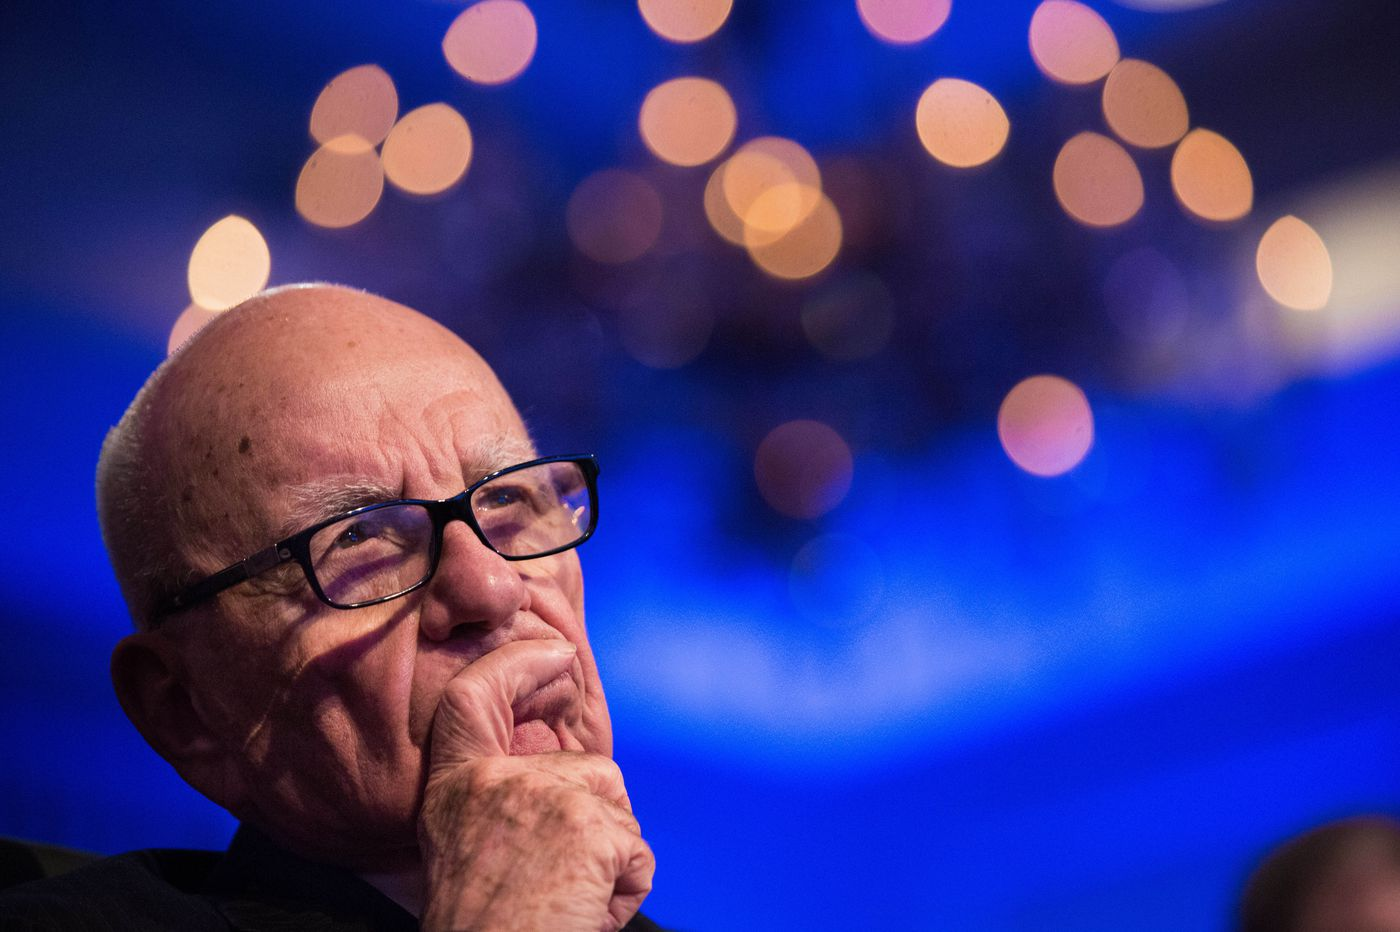 Rupert Murdoch: The media mogul says goodbye to much of the company he built